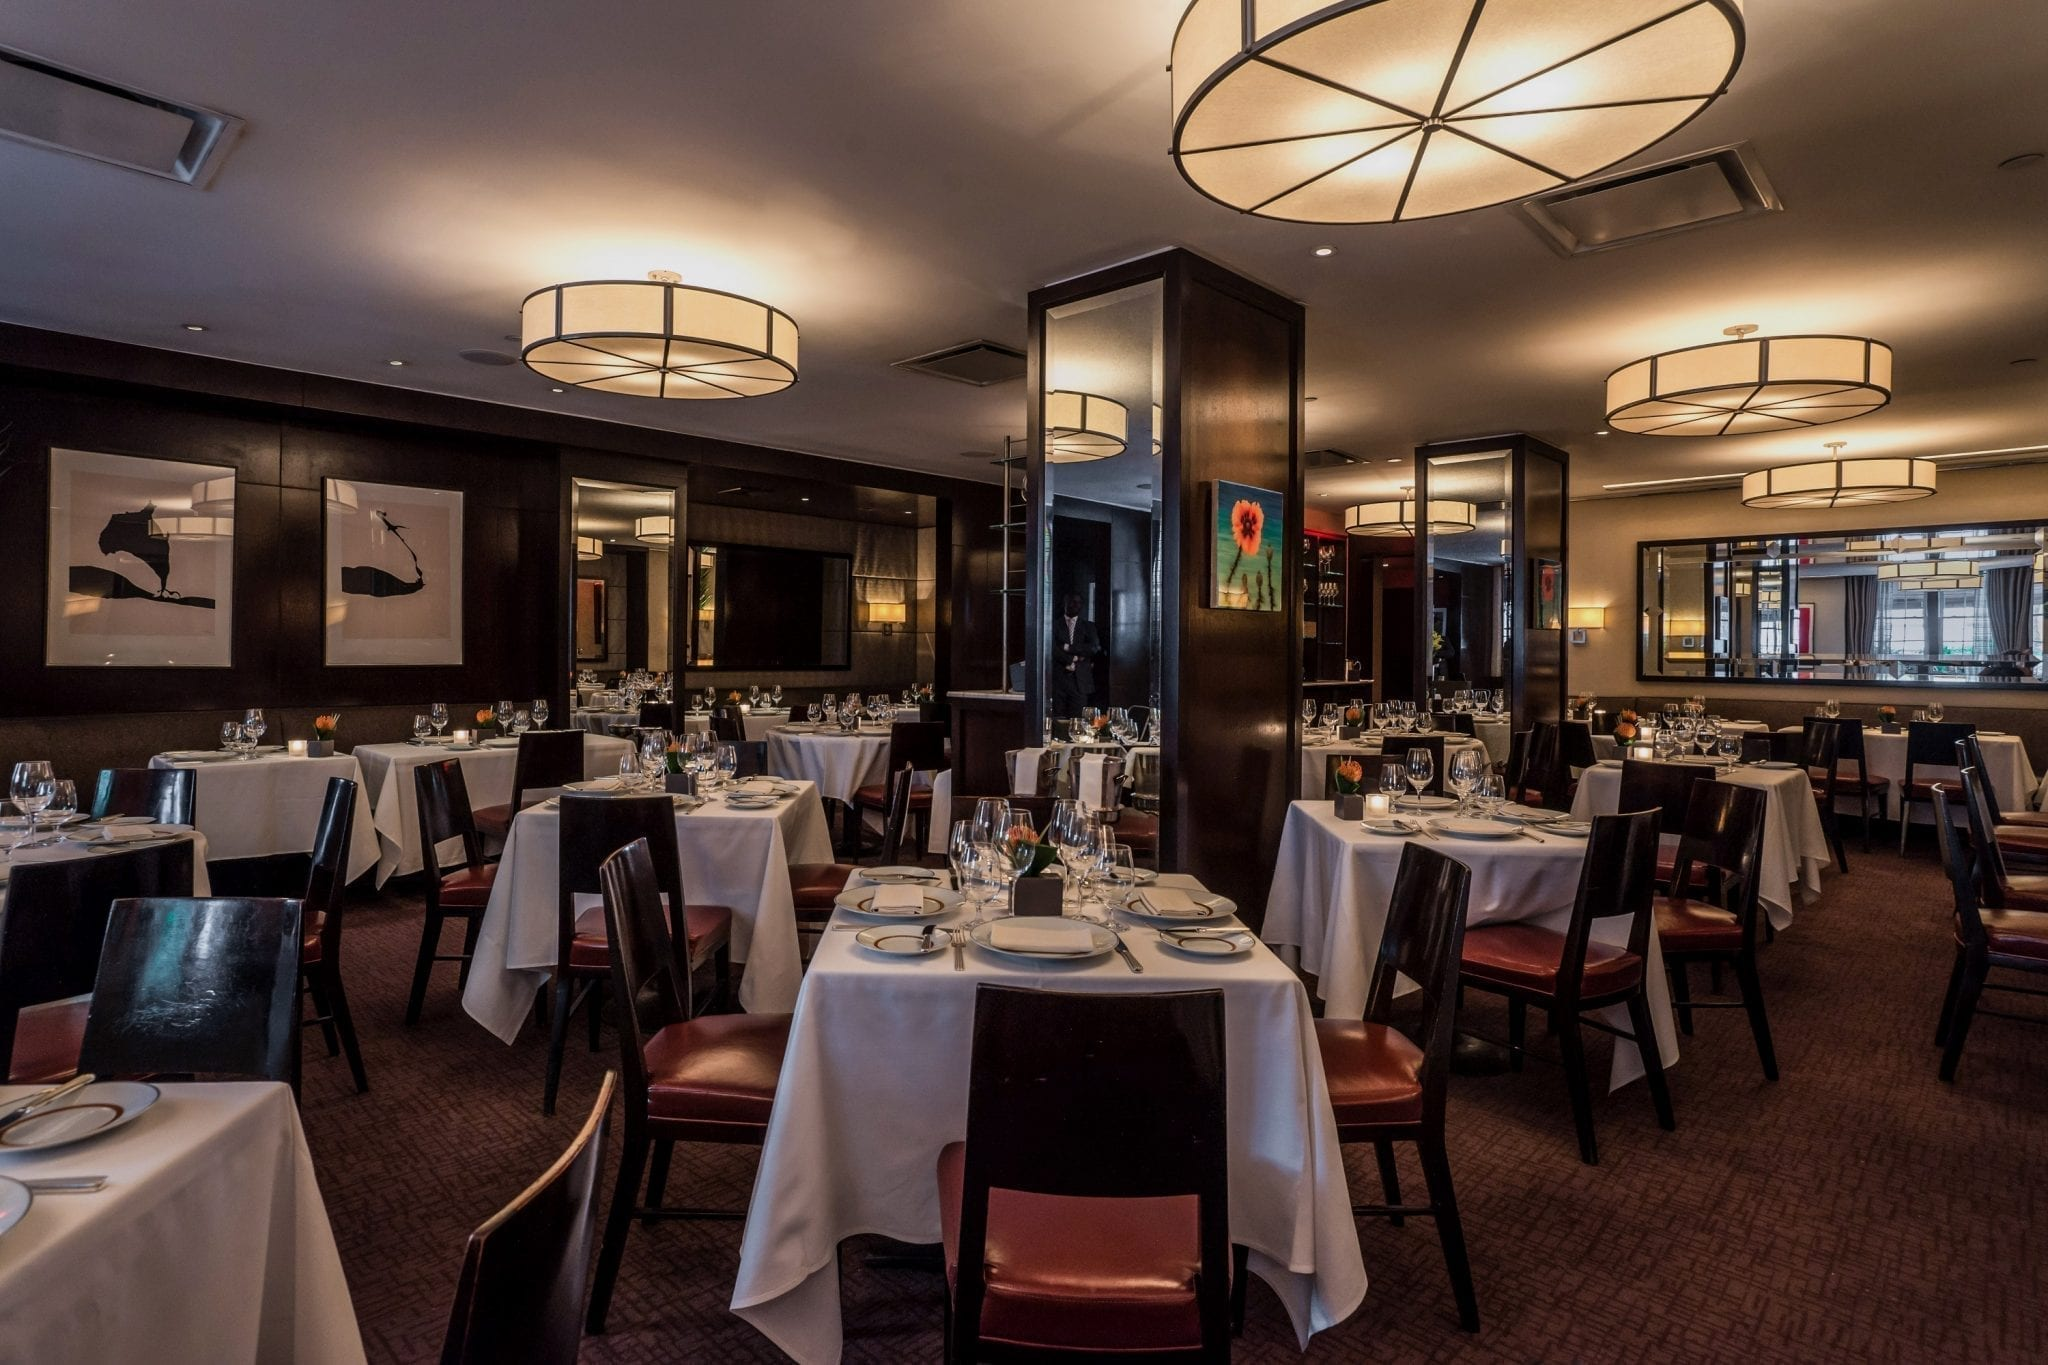 Long view of the Cafe Boulud dining room Square tables are placed around the room, each dressed in a white cloth. This room is warmly lit from round paneled lamps light the room. Photography by Paul Wagtouicz.